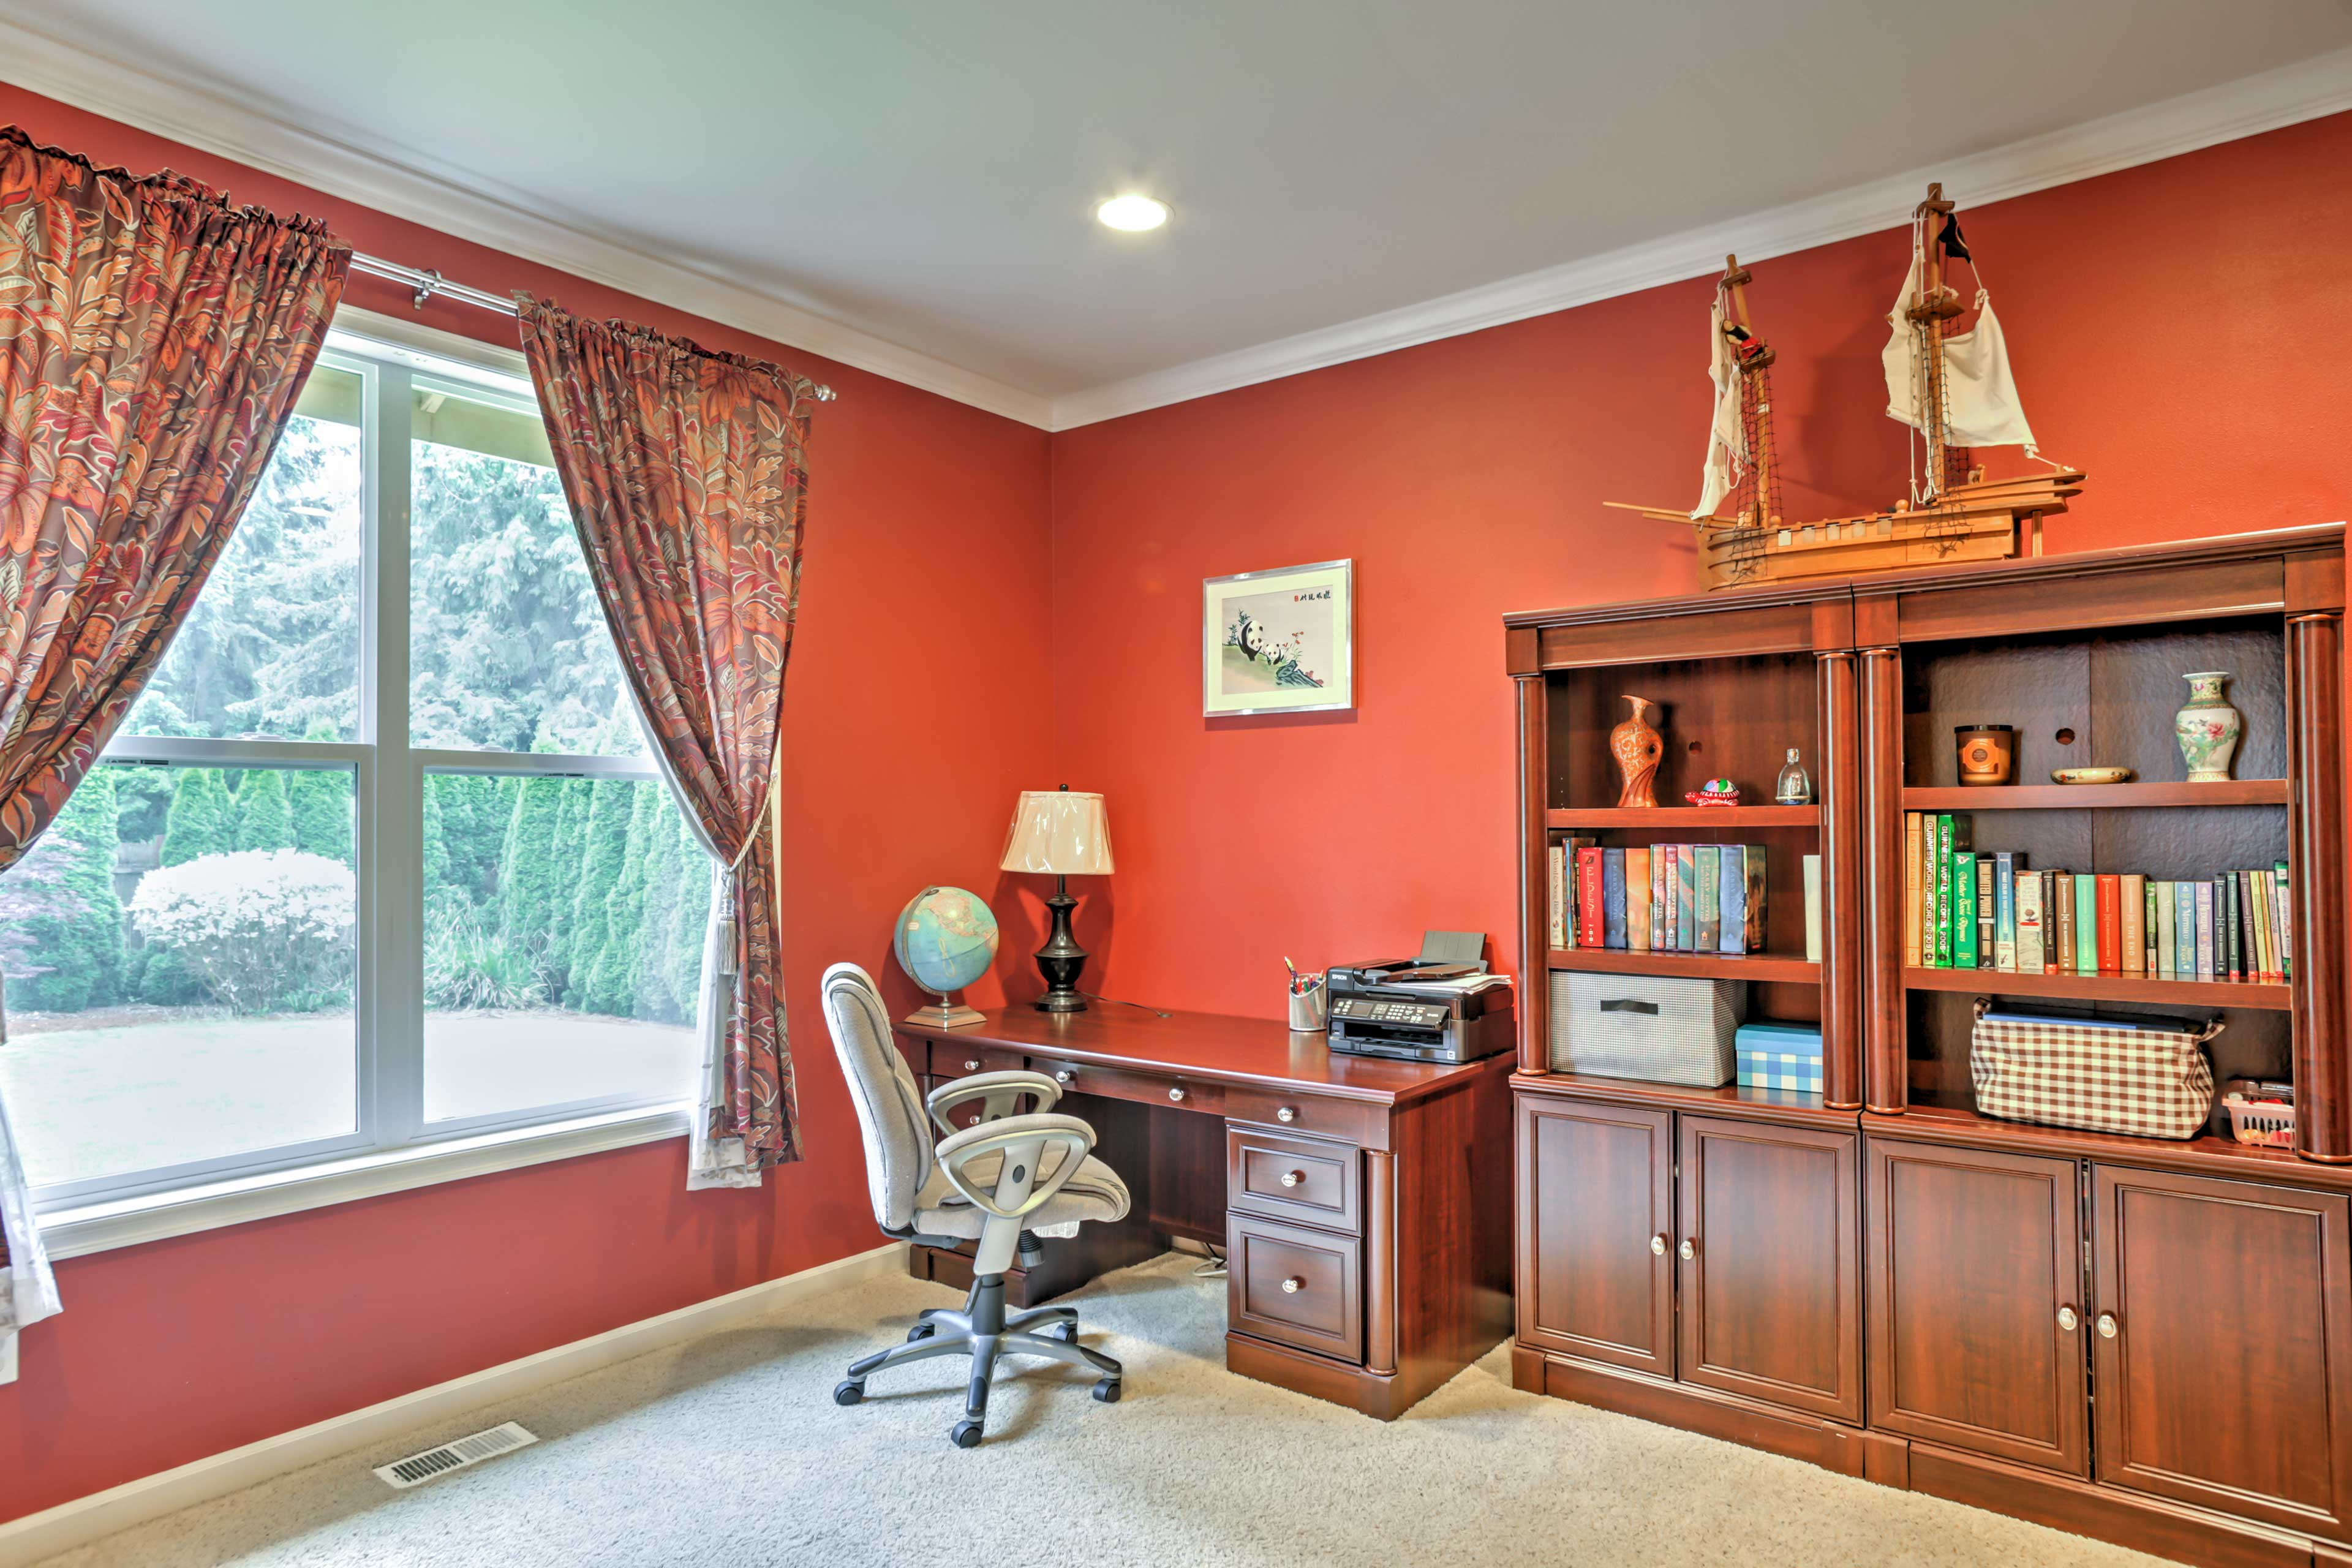 The office offers a great desk space, as well as a futon.